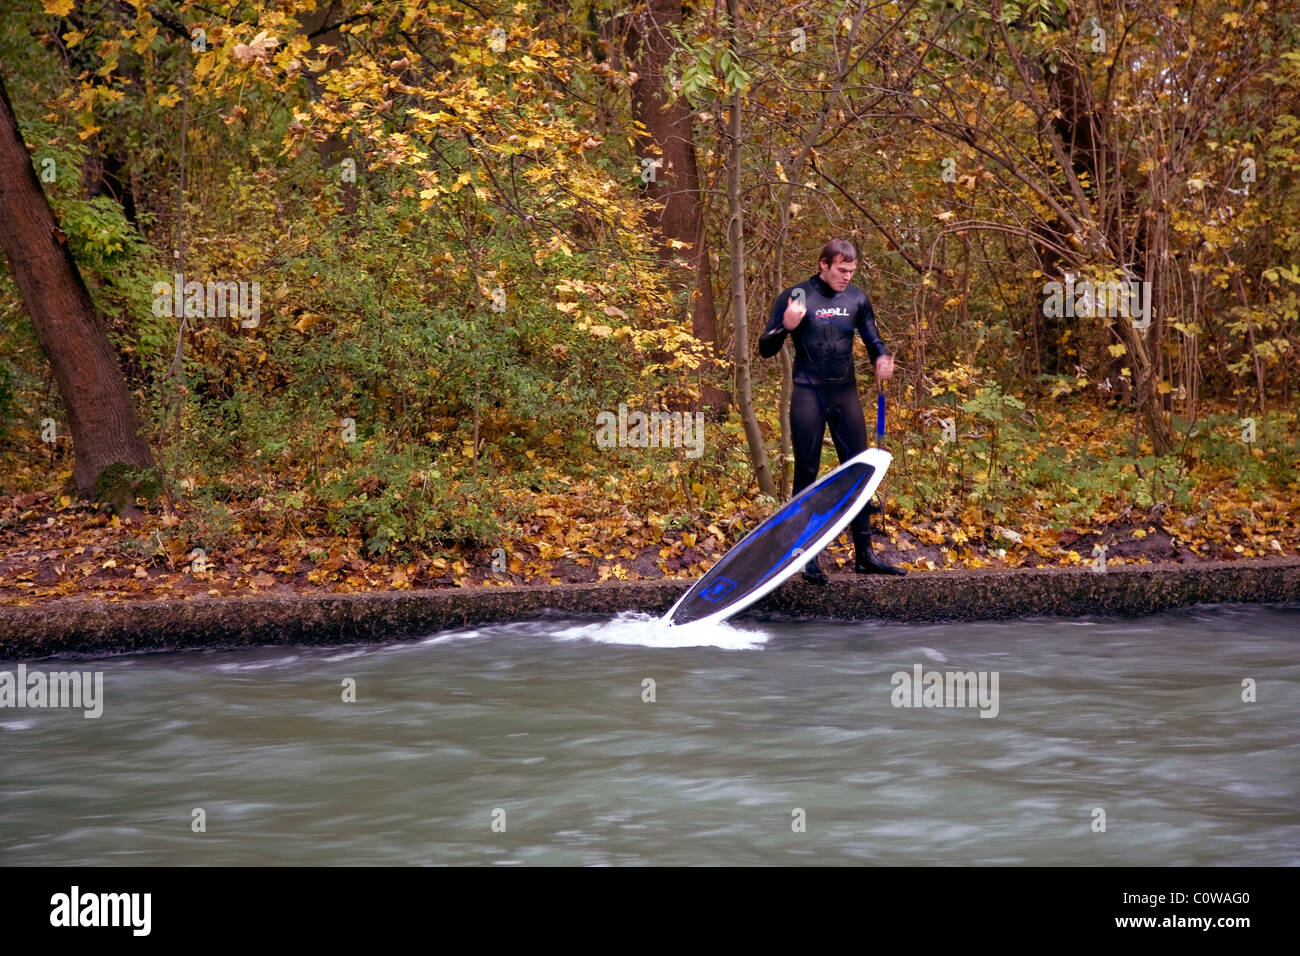 Surfer at the brook Eisbach in the English Gardens park in Munich, Bavaria, Germany at autumn - Stock Image